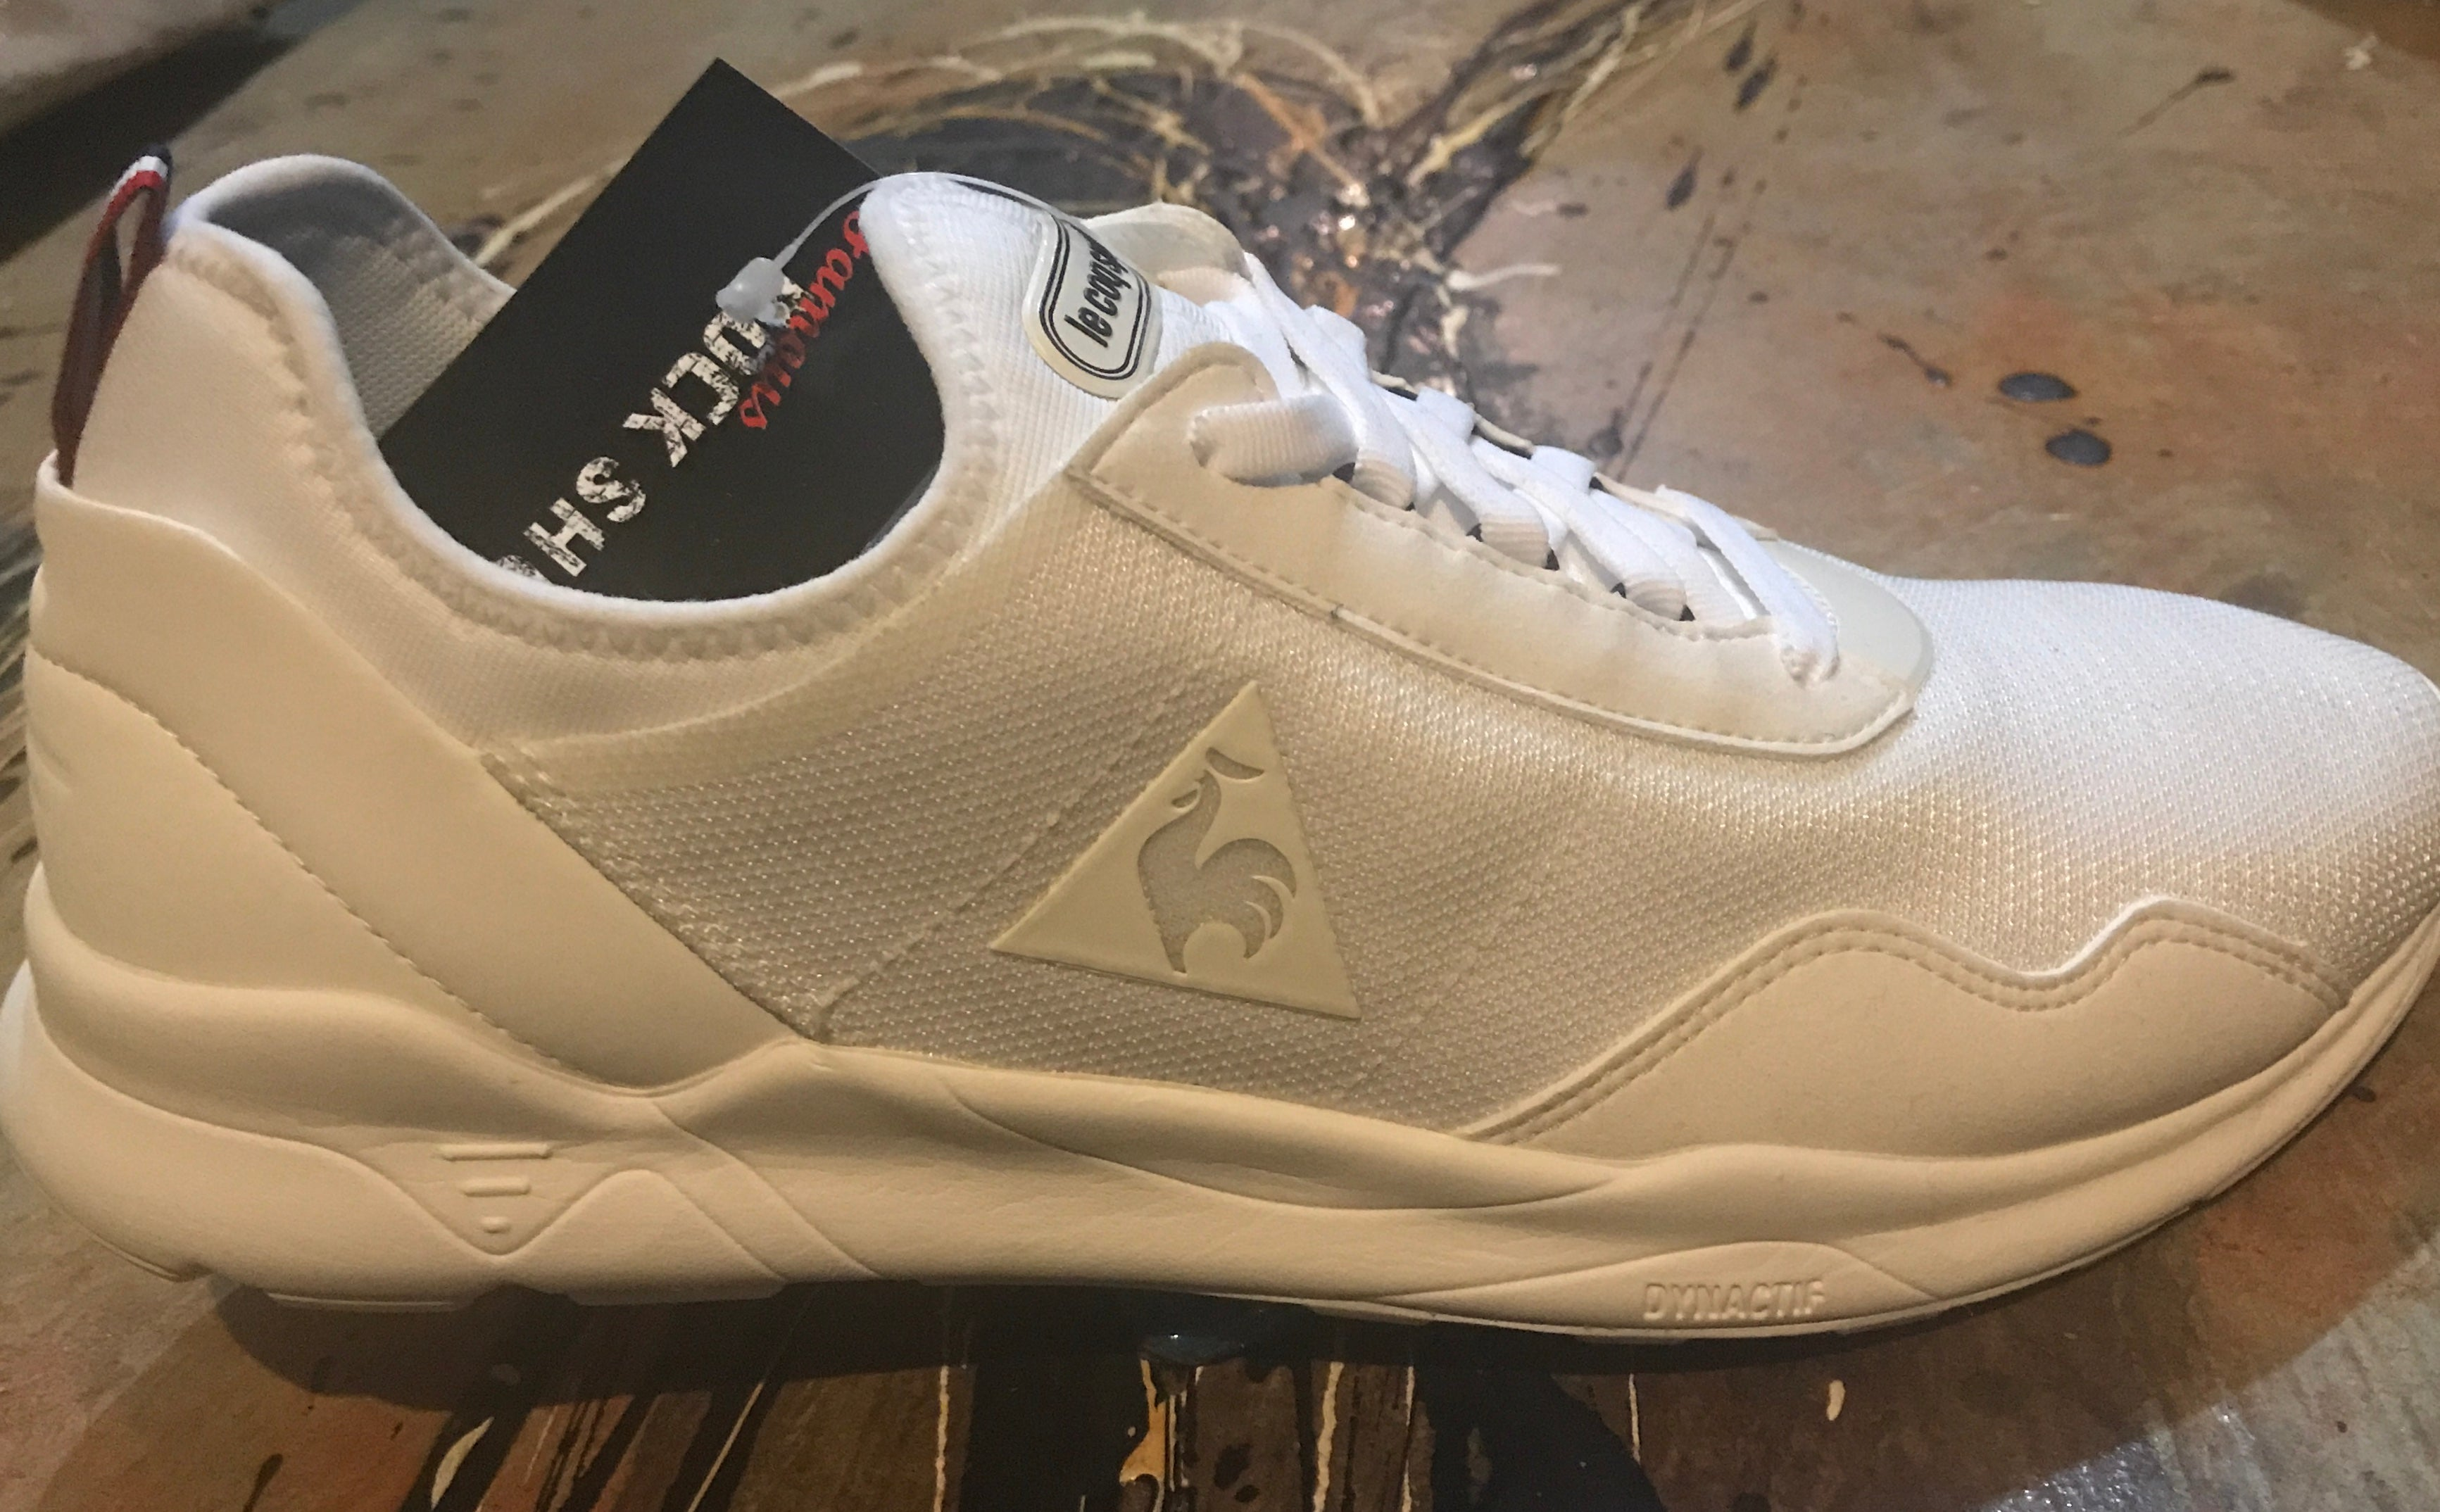 ed2bd088413b Le Coq Sportif LCSR XX Mesh Optical White Black 1720199 Famous Rock Shop  Newcastle 2300 NSW ...